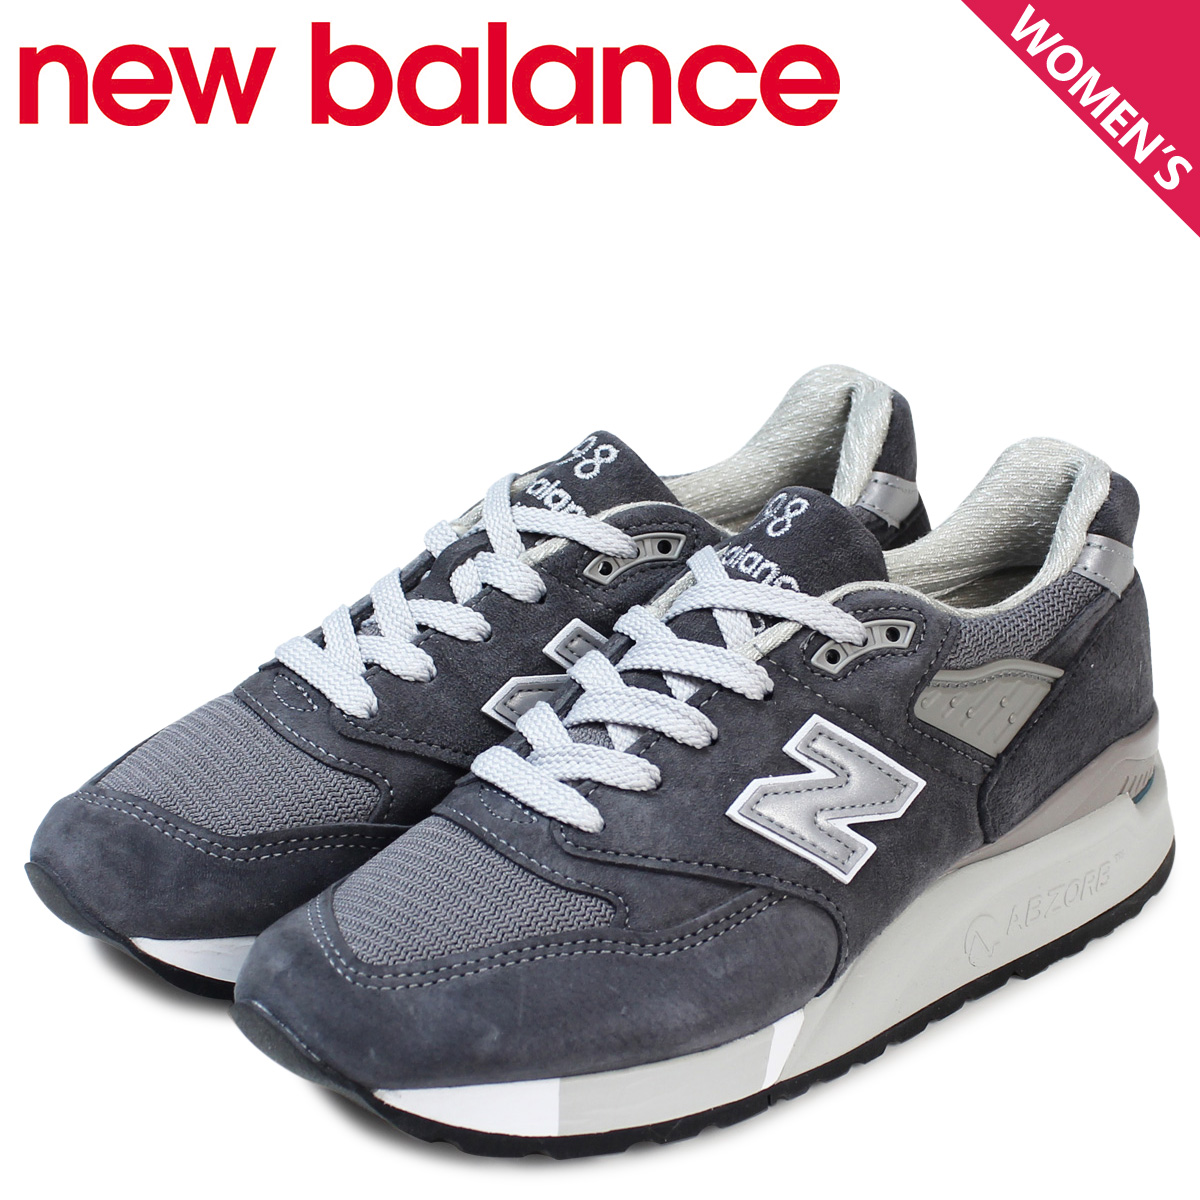 reputable site 180d8 f3c00 New Balance 998 Lady's new balance sneakers W998CH B Wise shoes gray